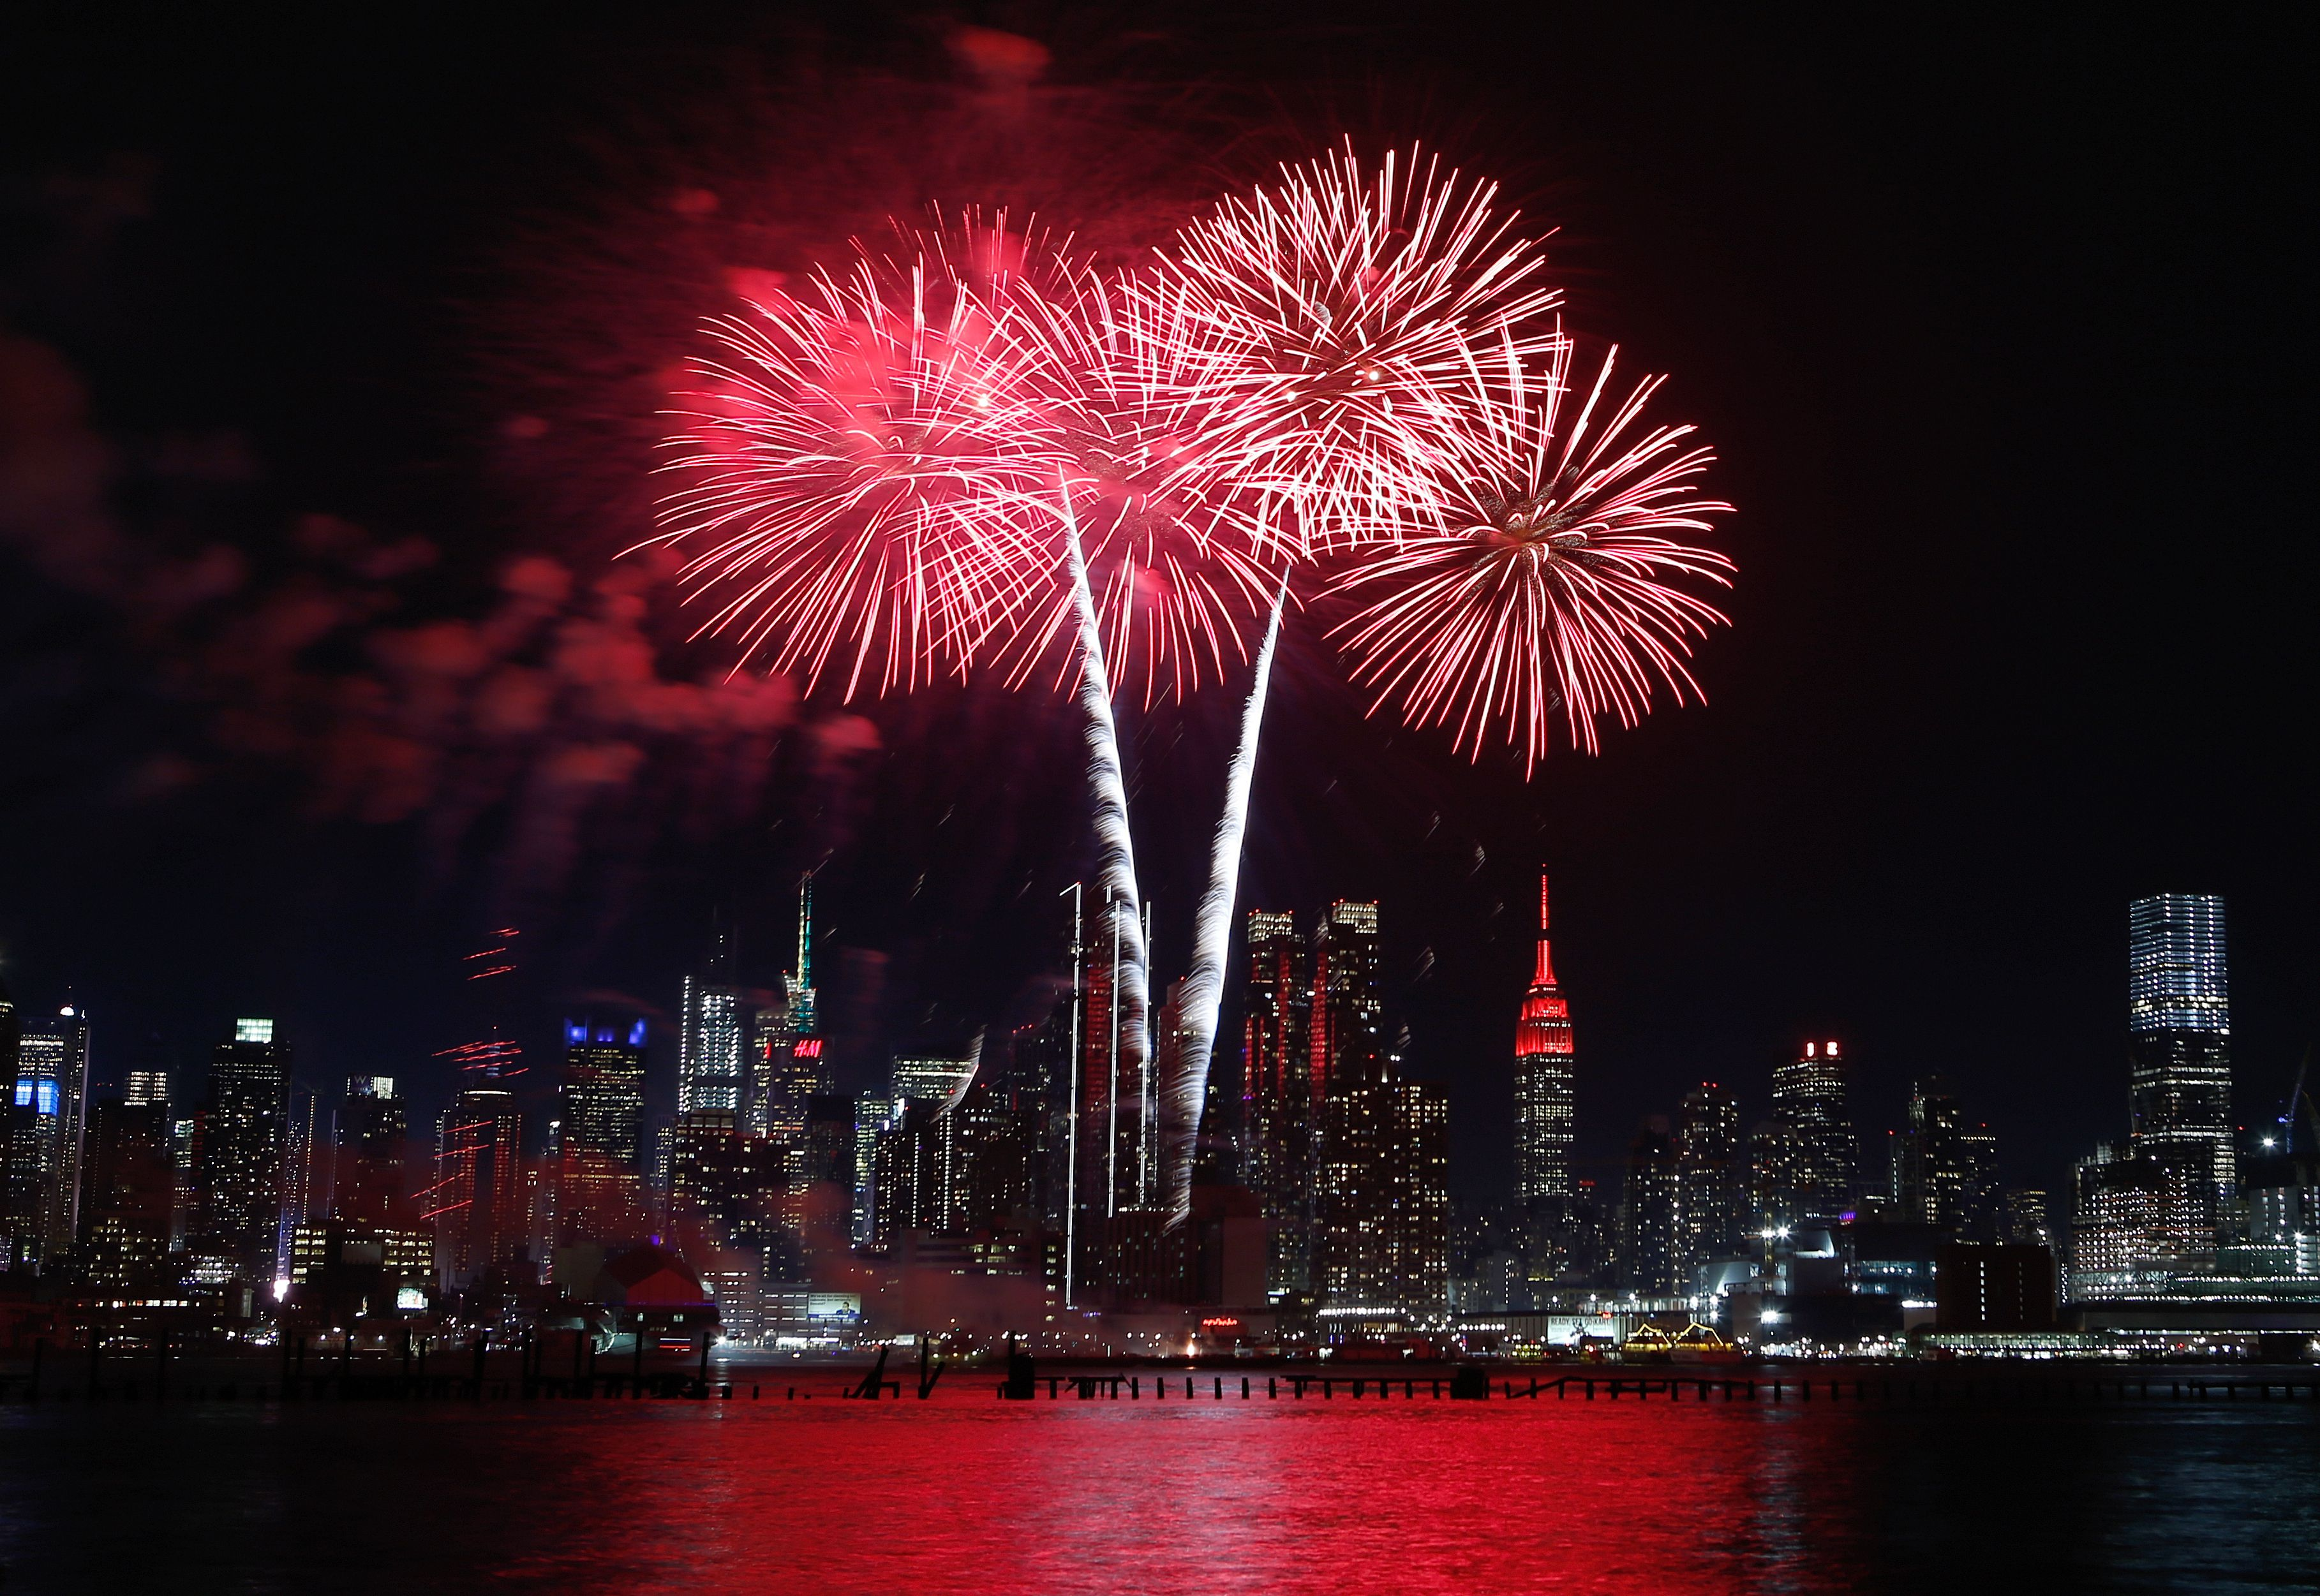 In this illustration, two bursts of fireworks light up New Yorks skyline